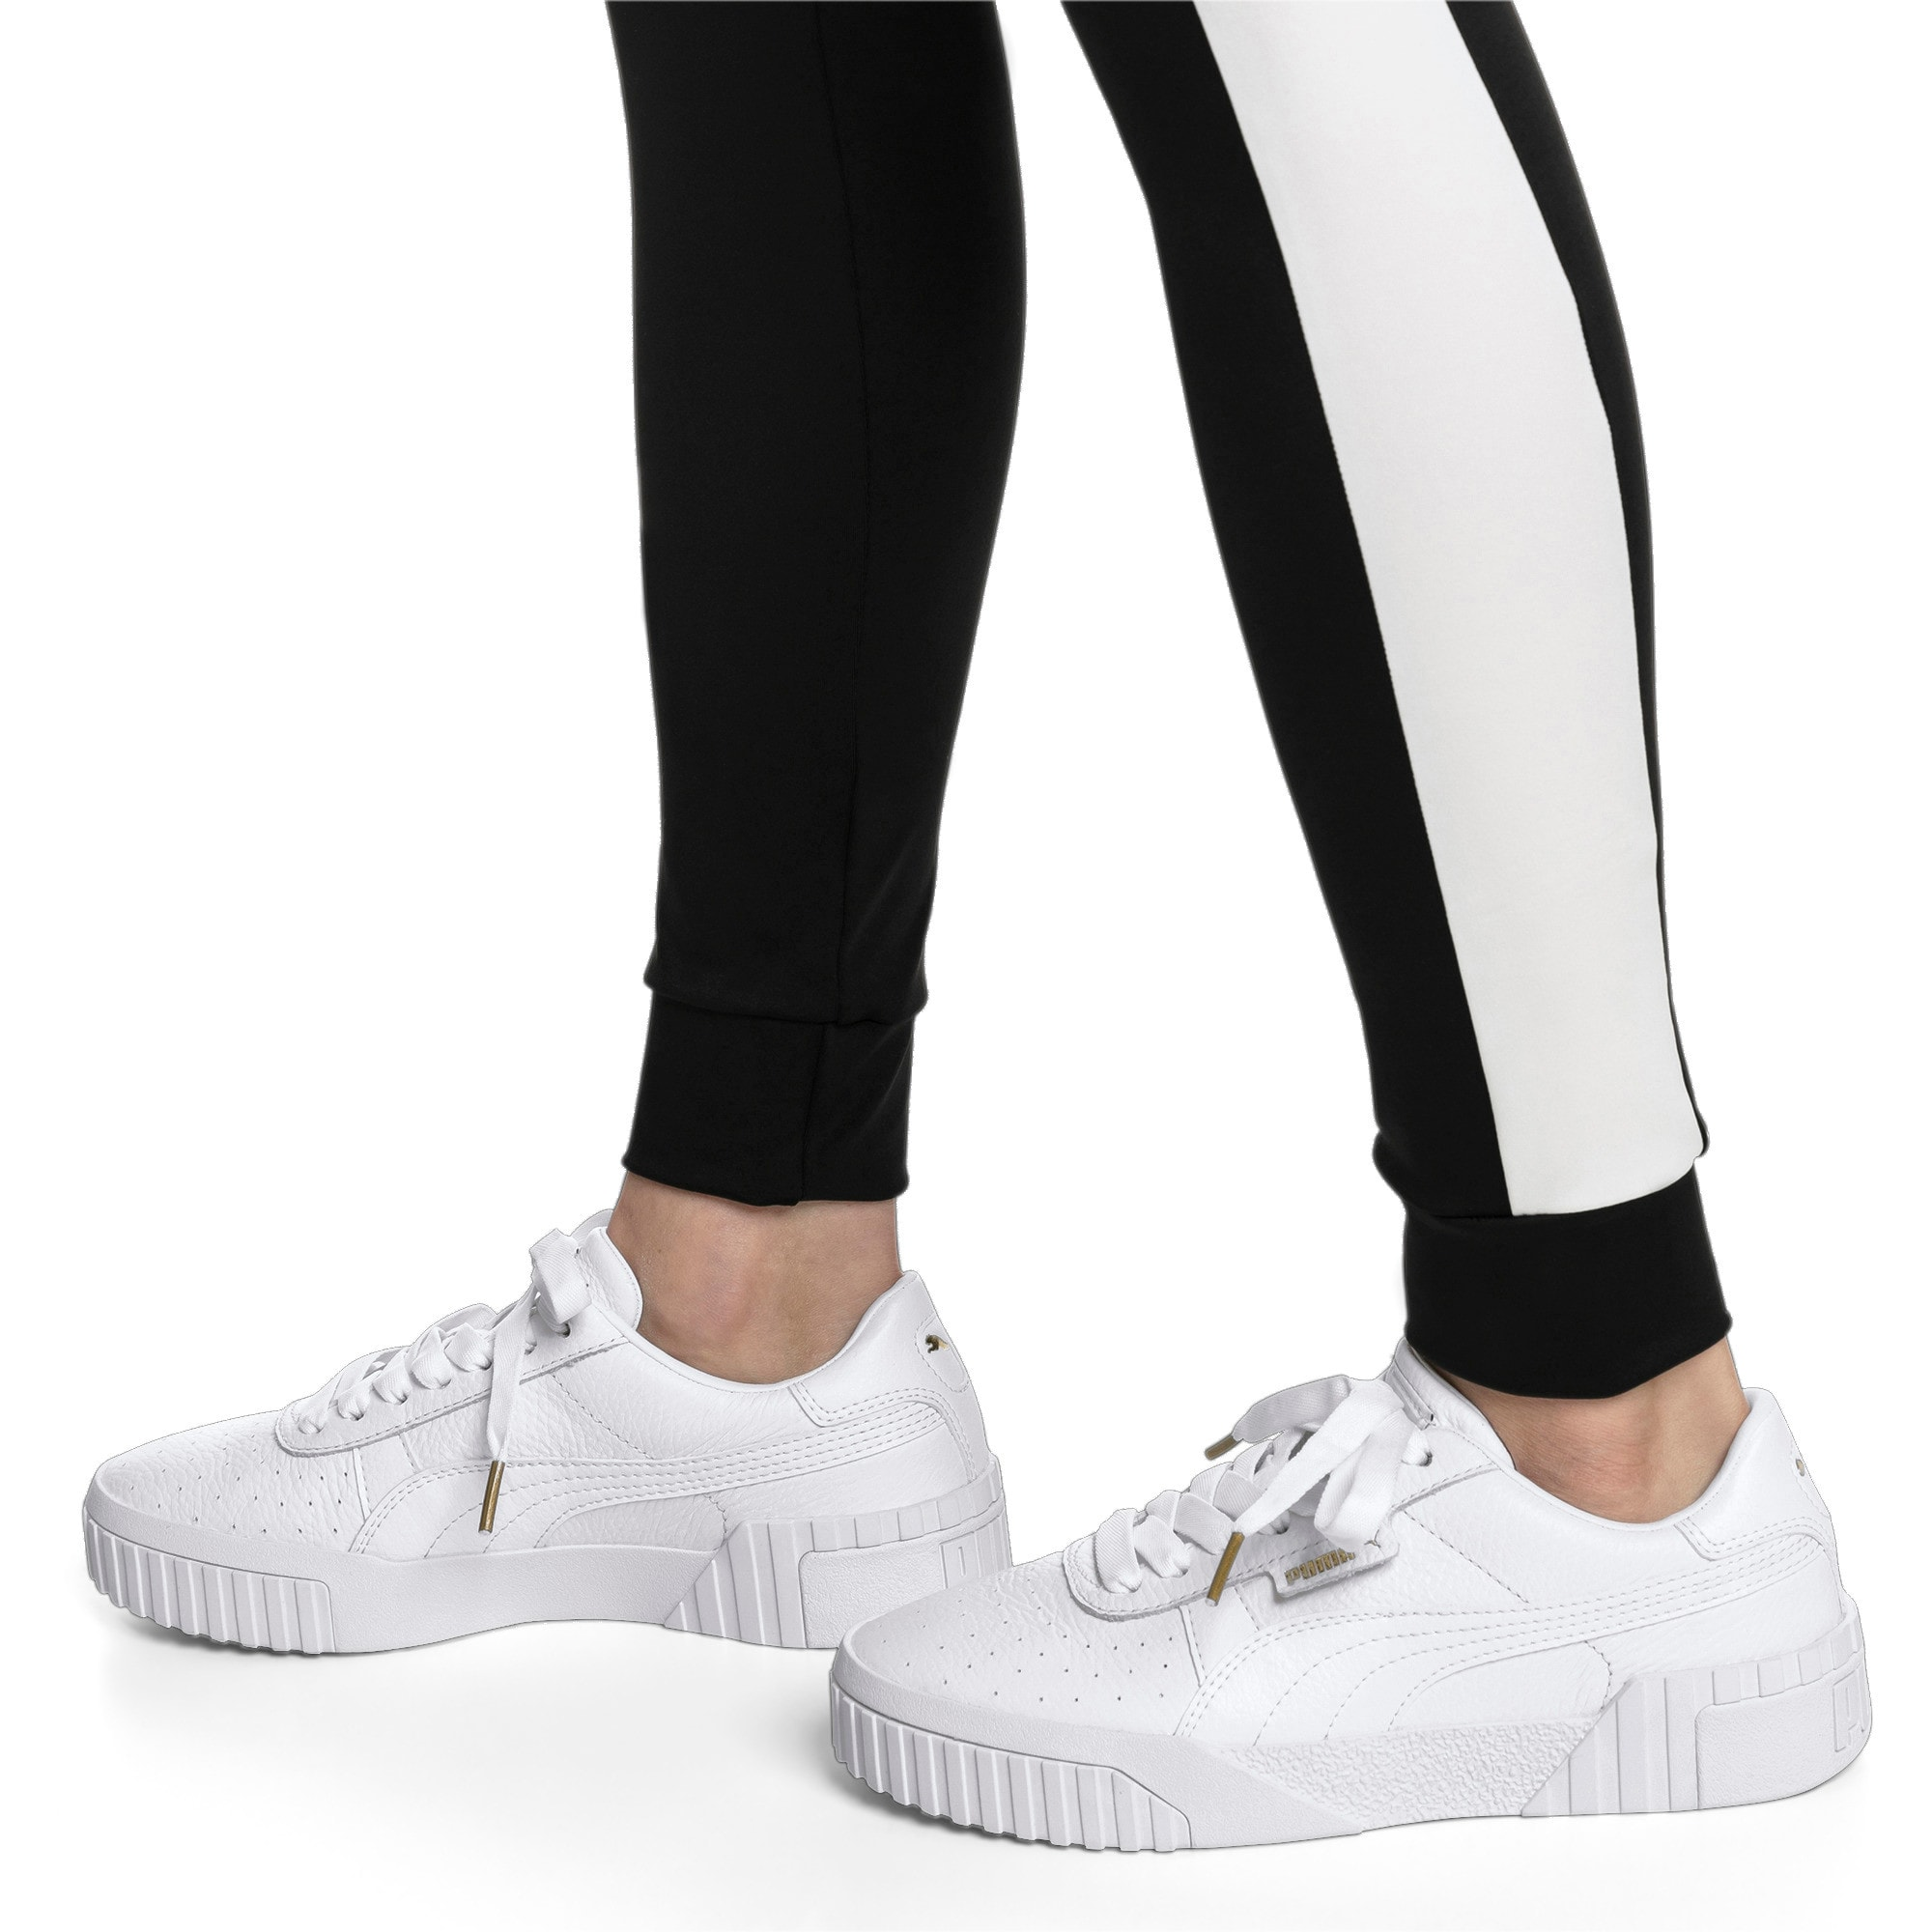 Cali sneakers voor vrouwen, Puma White-Puma White, large